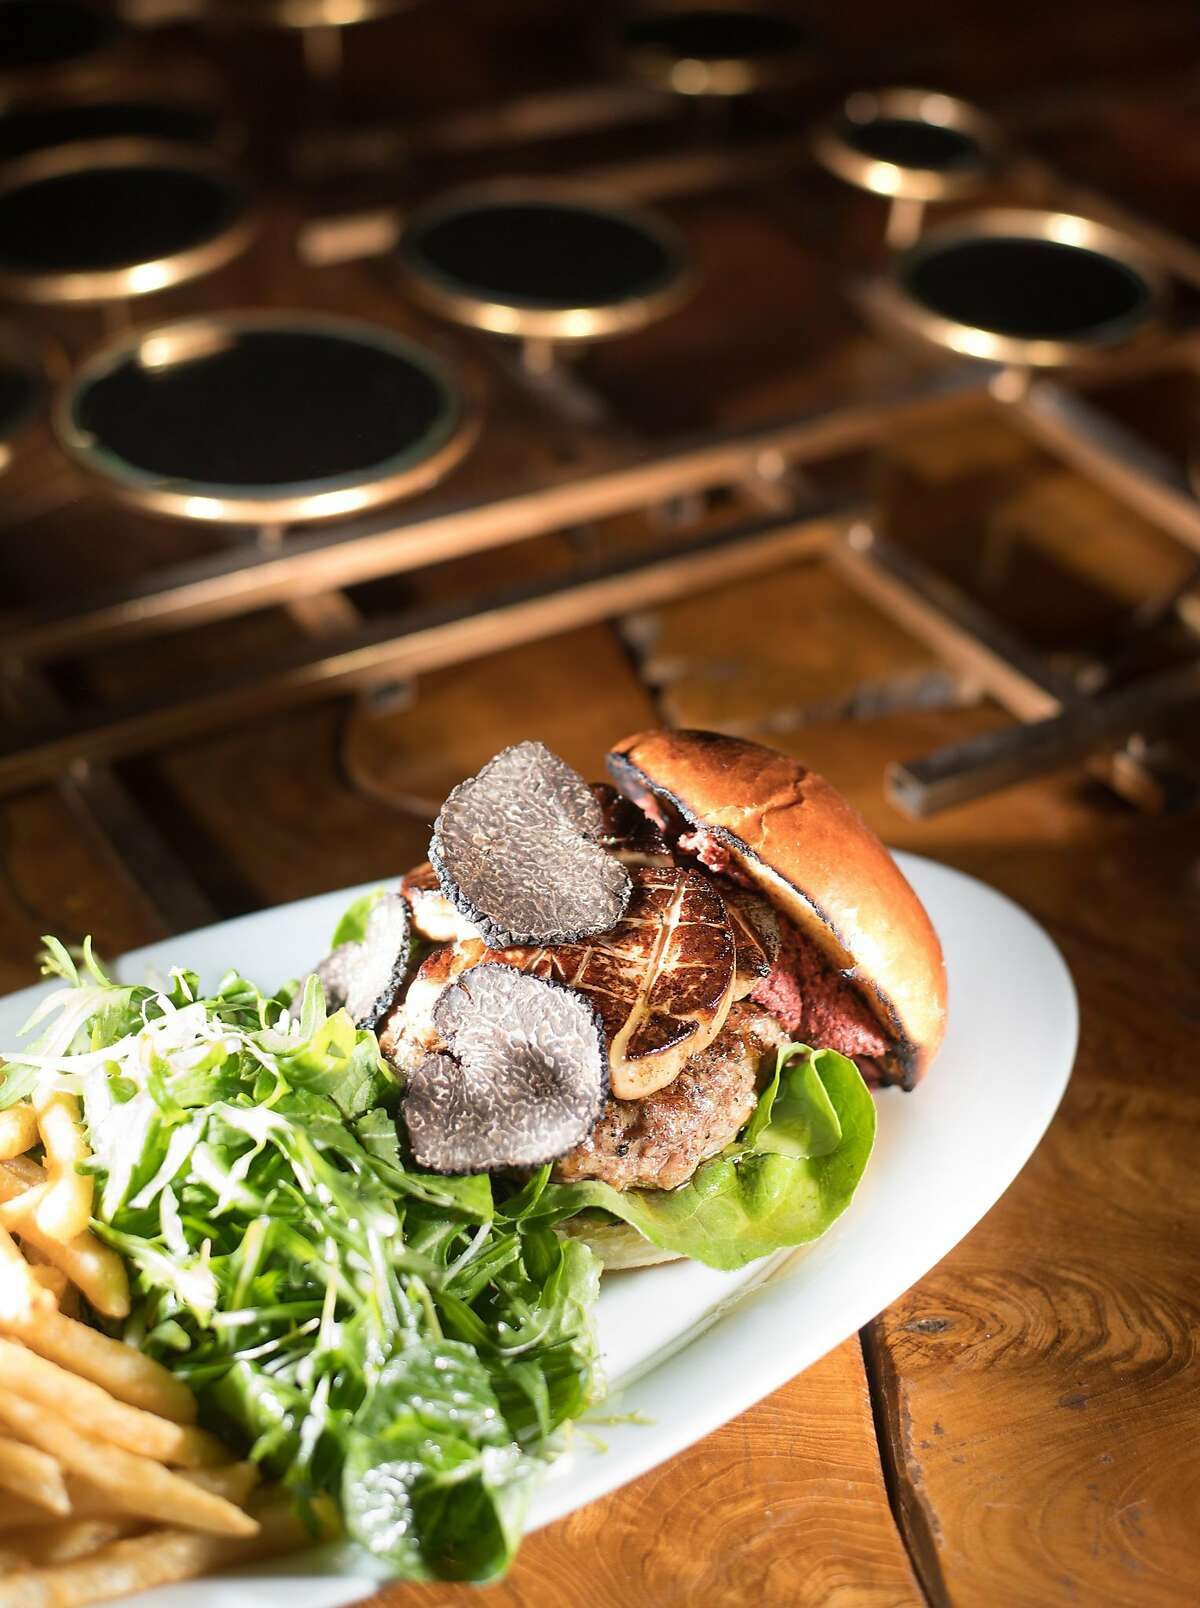 A Sonoma Duck Burger with foie gras rests on a table at Lucia on Thursday, February 16, 2017, in Carmel Highlands, Calif.